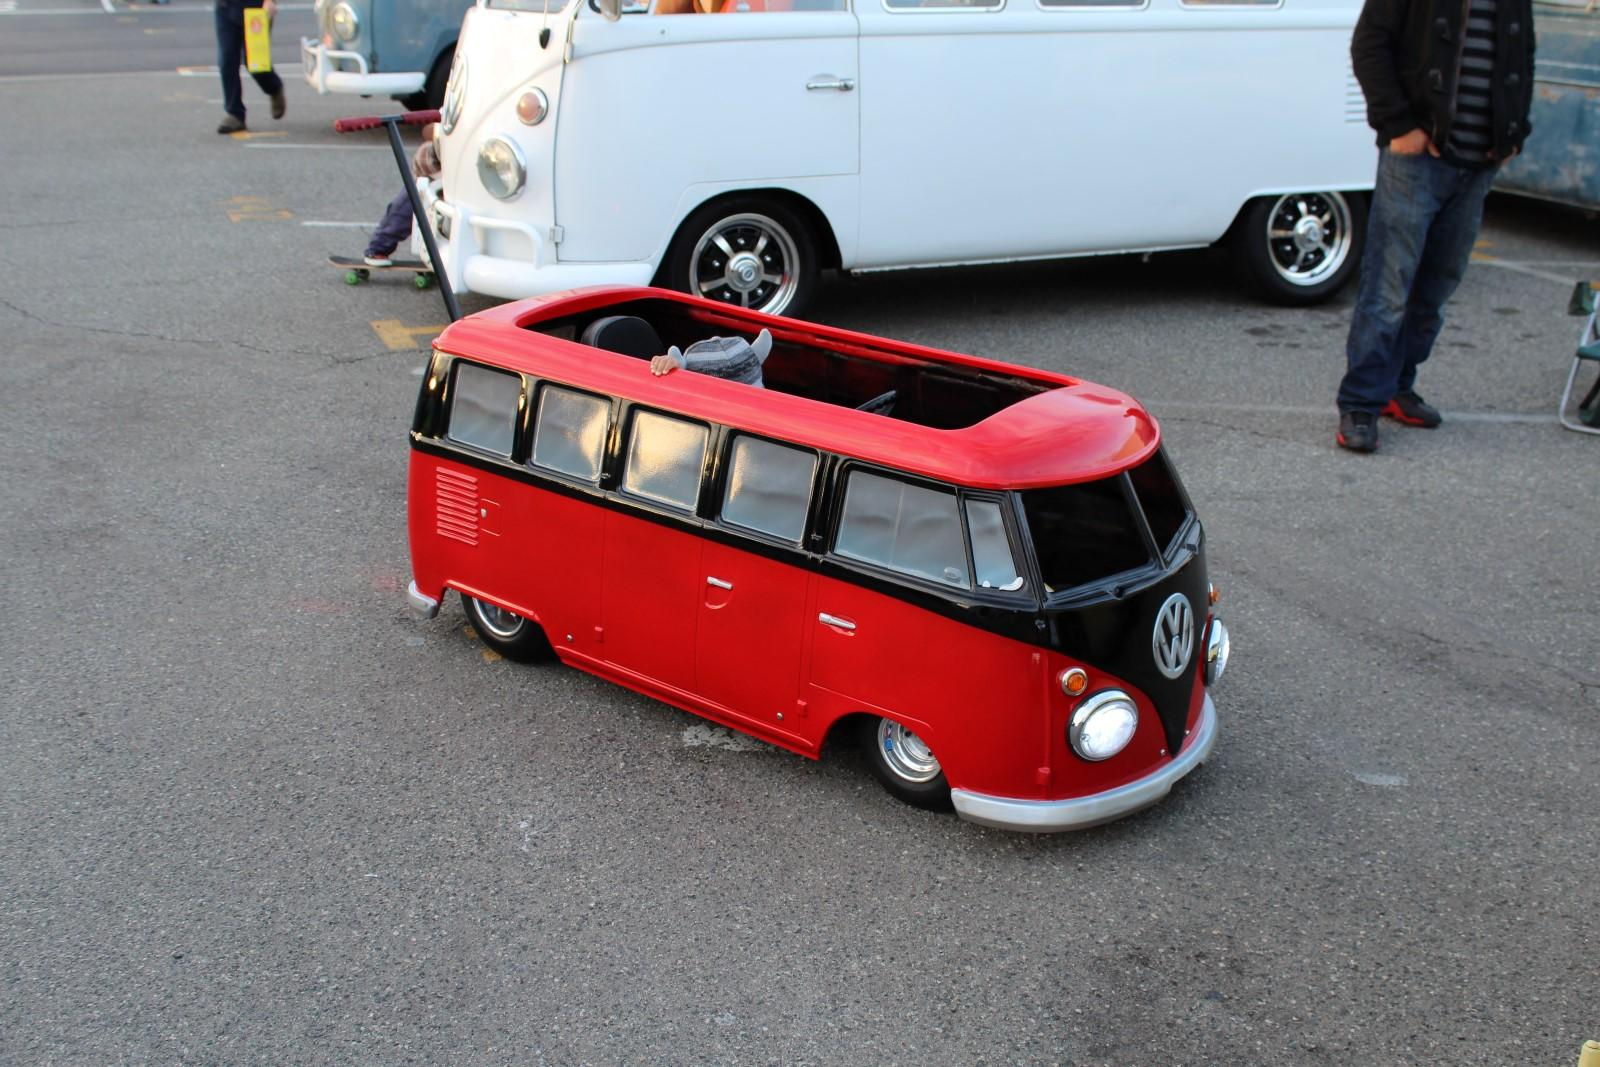 Swap meet photos - Kid's Bus